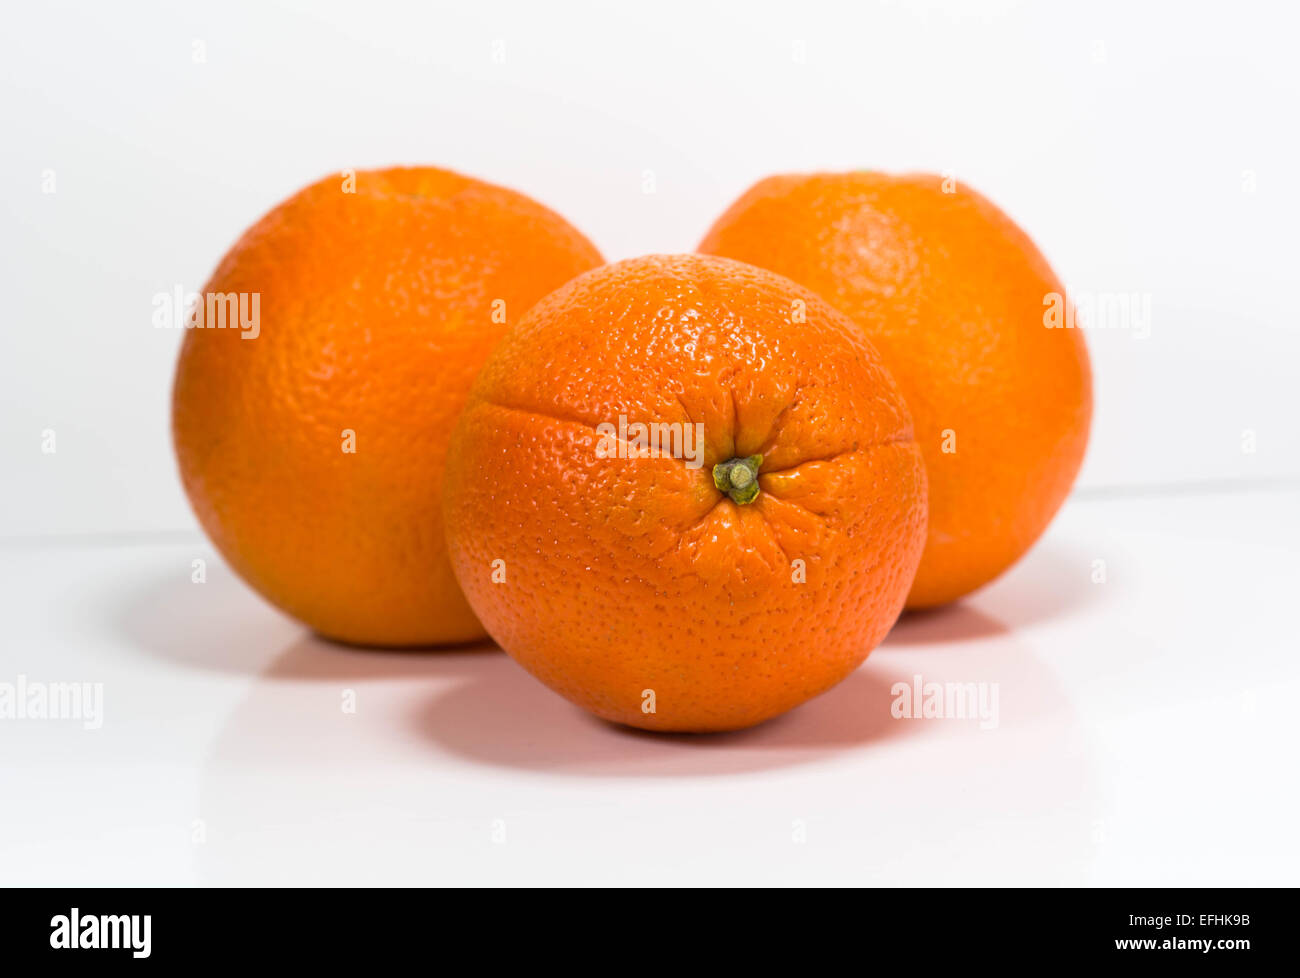 Three oranges isolated on a white background. - Stock Image